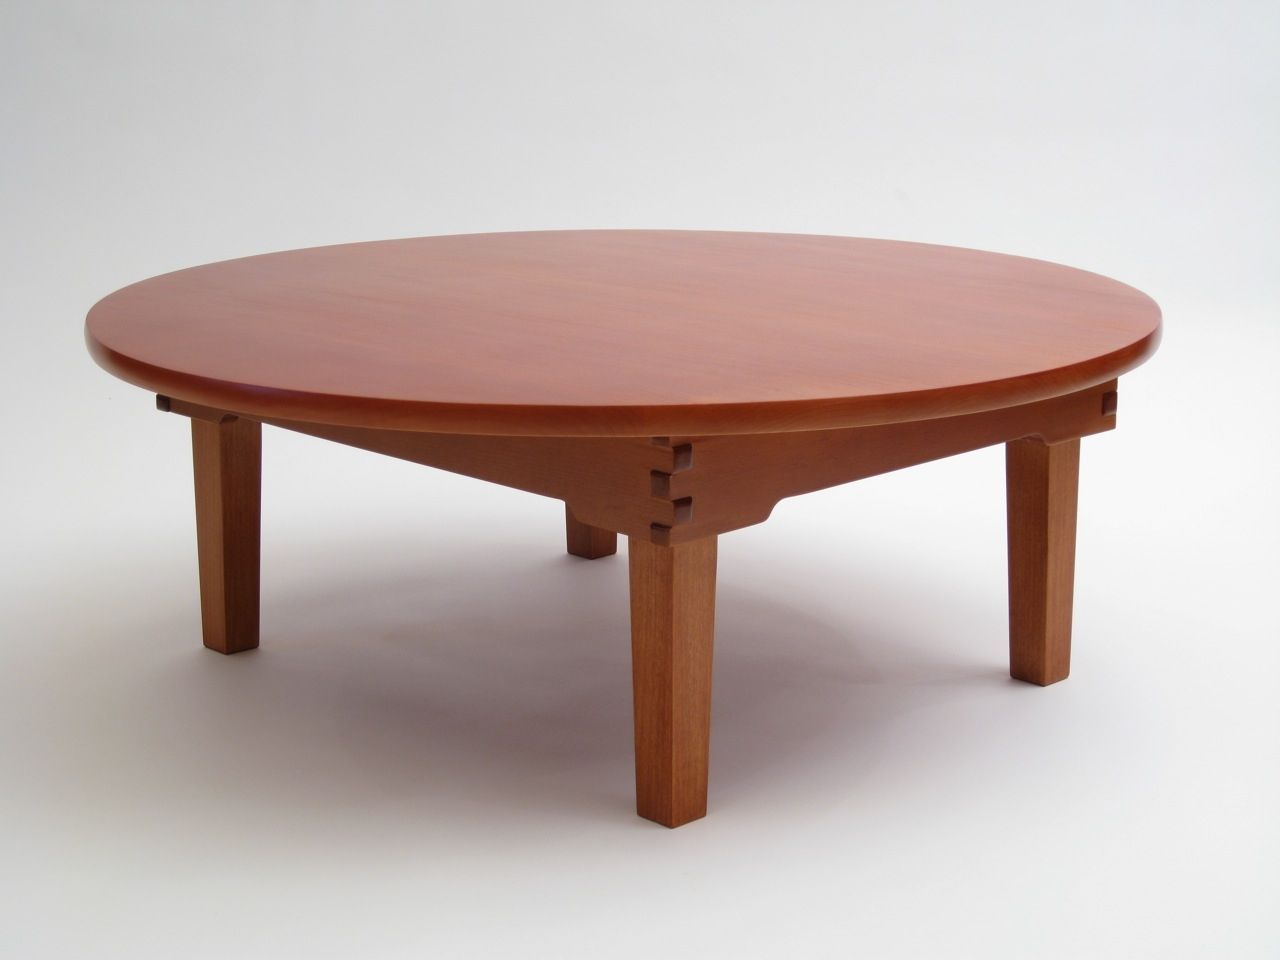 Round Table Bedroom Furniture: Custom Made Japanese Chabudai, A Low Folding Table